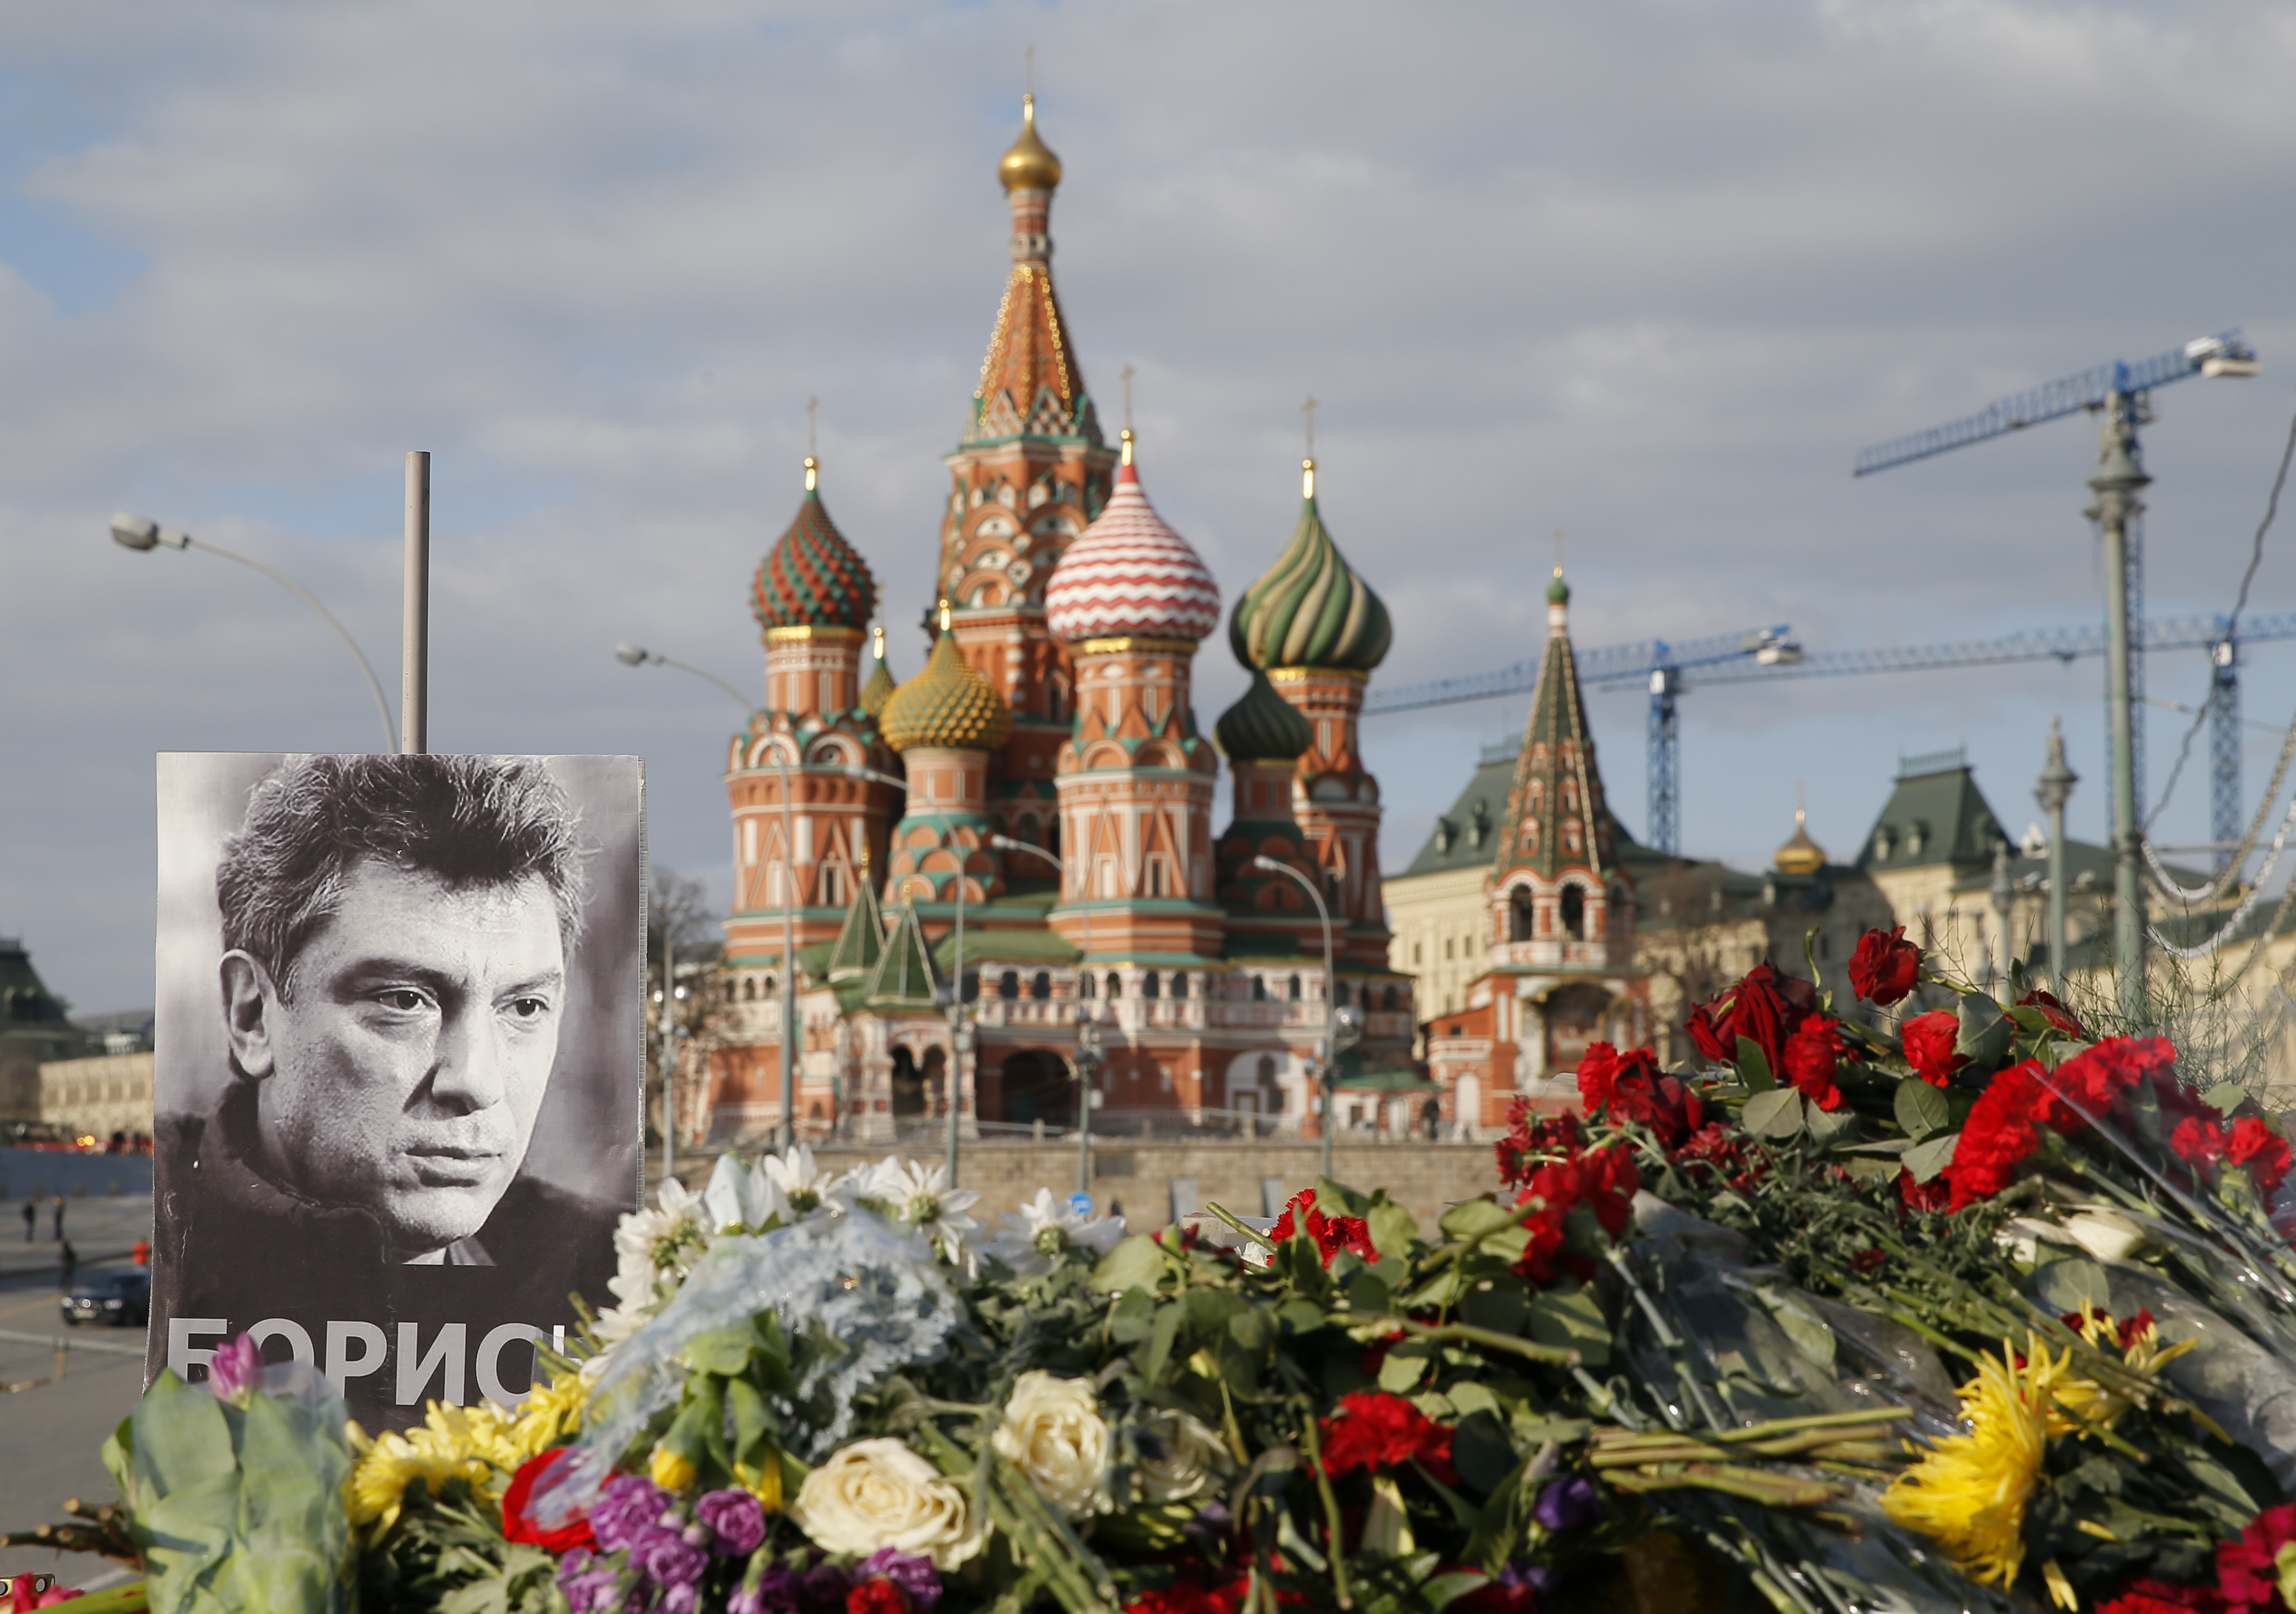 A portrait of Kremlin critic Boris Nemtsov and flowers are pictured at the site where he was killed on Feb. 27, 2015 with St. Basil's Cathedral seen in the background, at the Great Moskvoretsky Bridge in central Moscow on March 6, 2015.